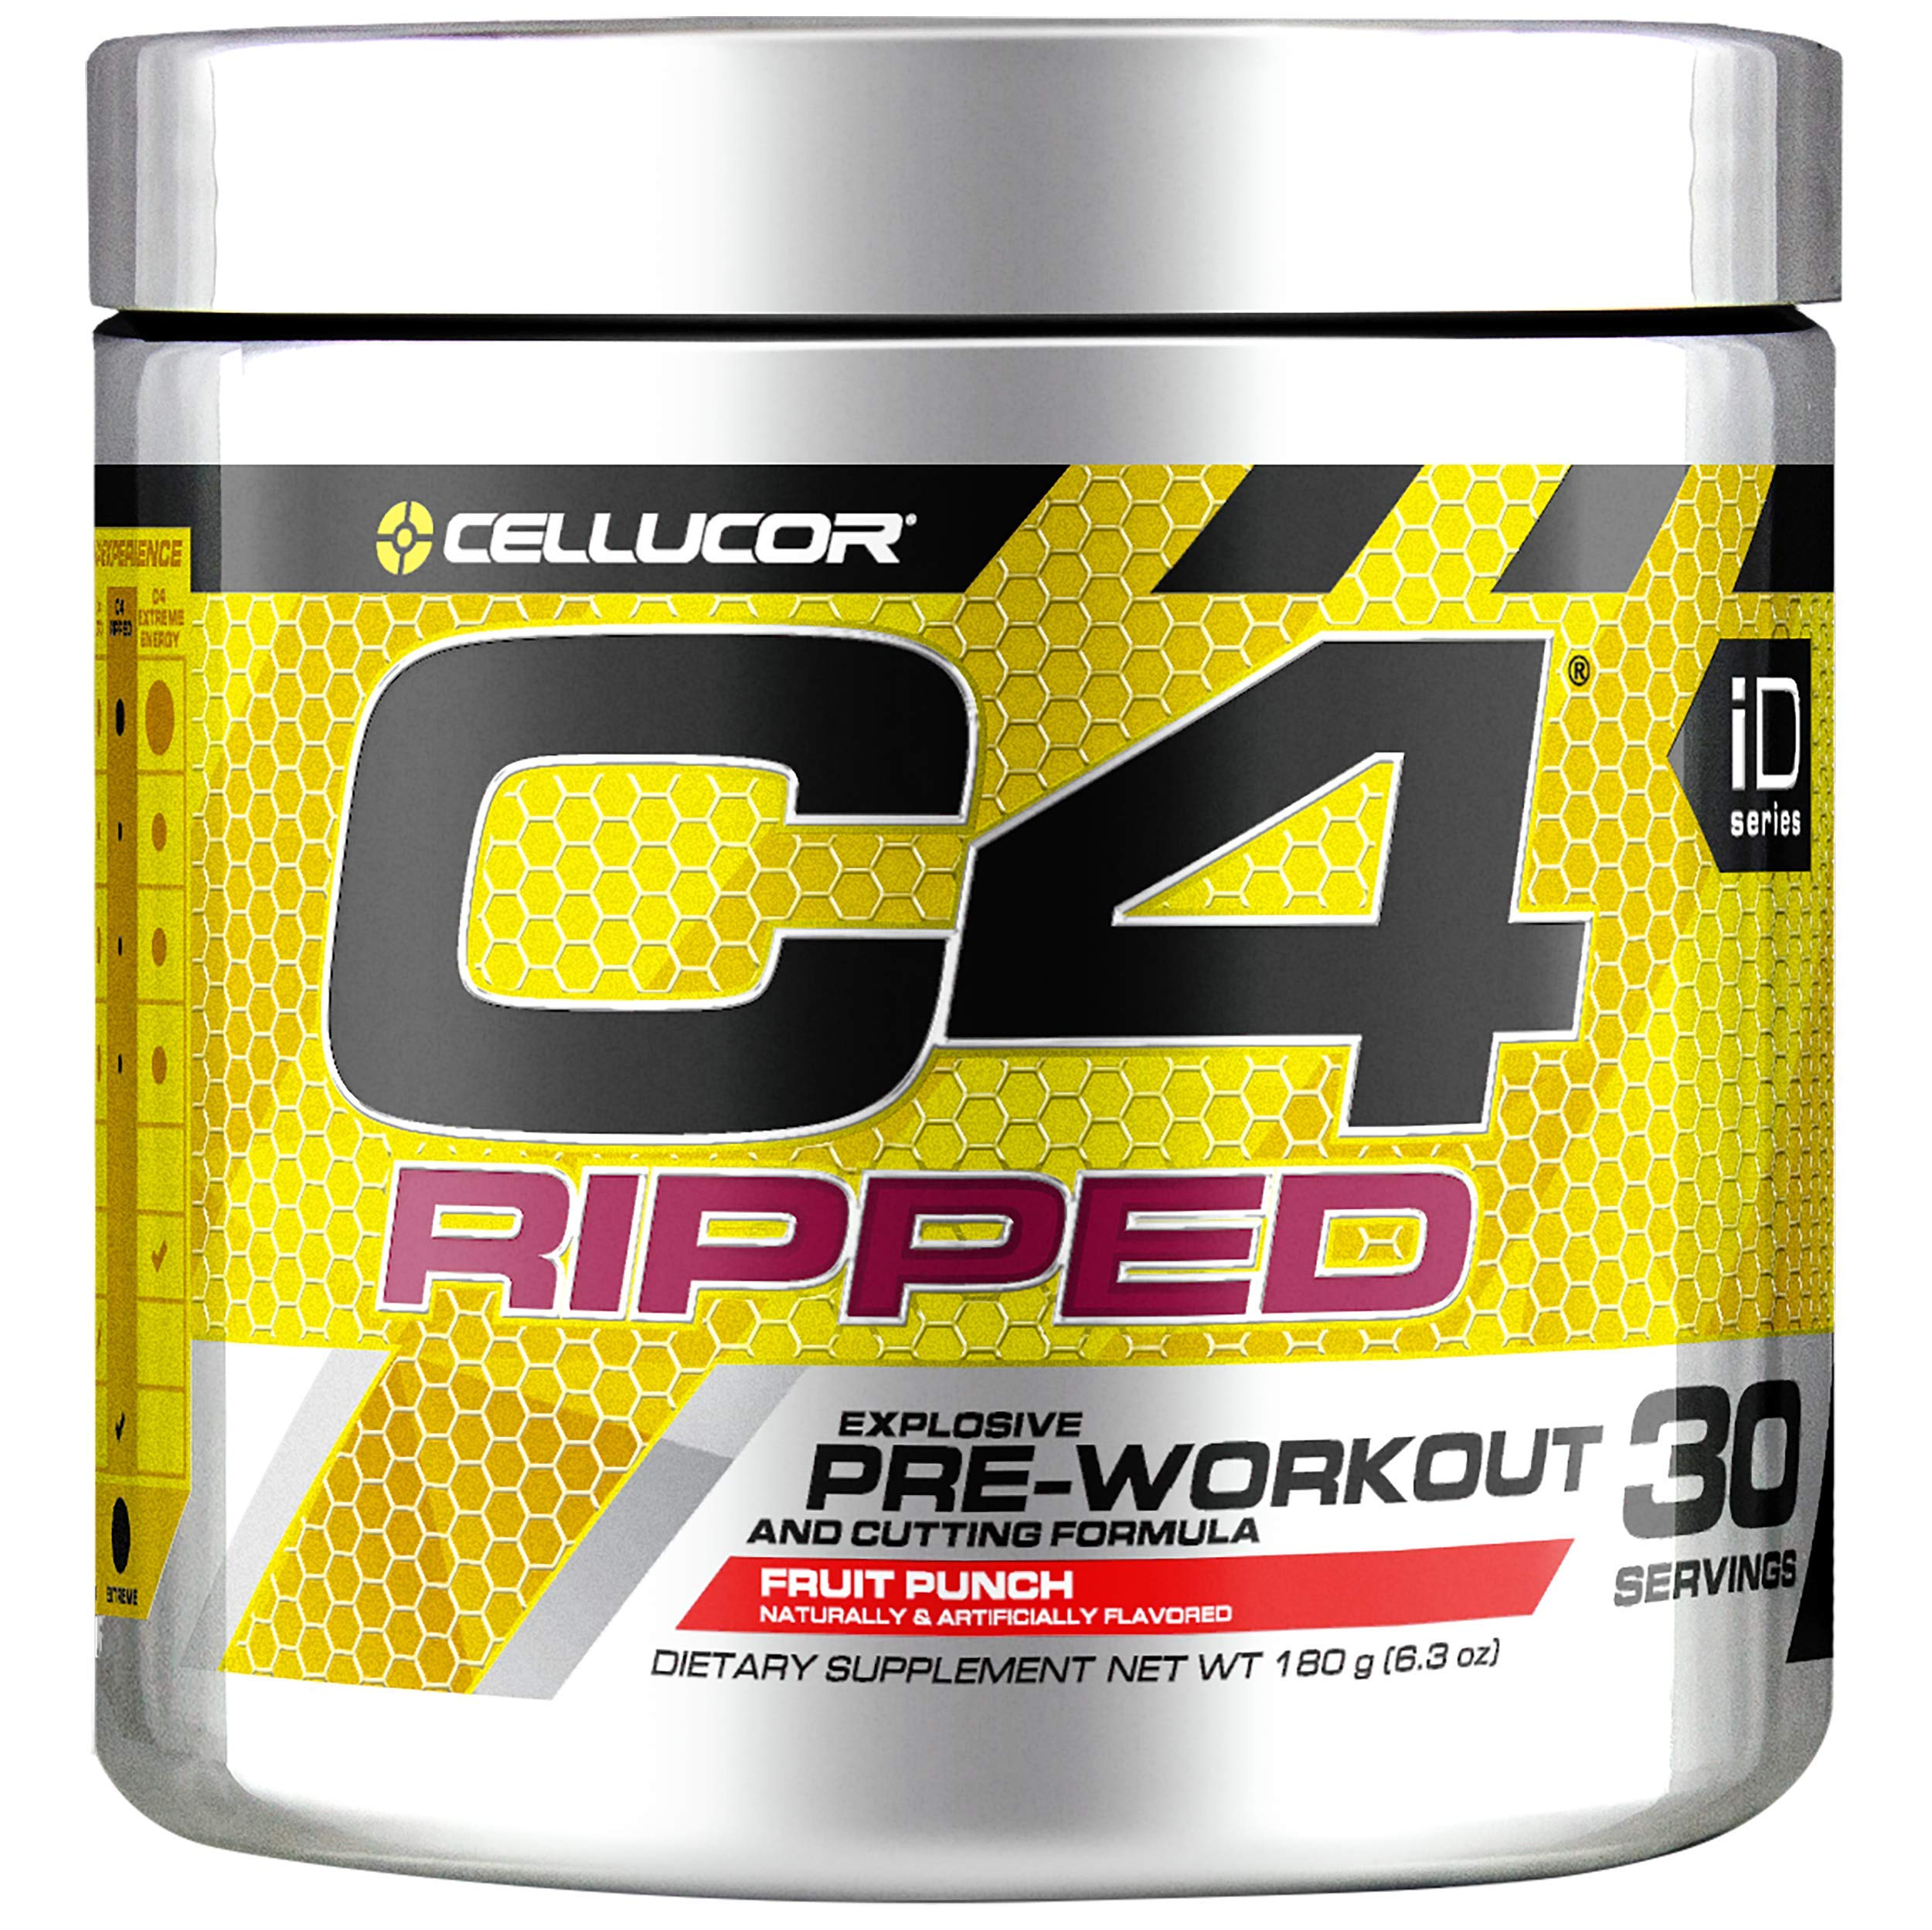 Cellucor C4 Ripped Pre Workout Powder, Fruit Punch, 30 Servings - Preworkout Powder for Men & Women with Green Coffee Bean Extract & L Carnitine